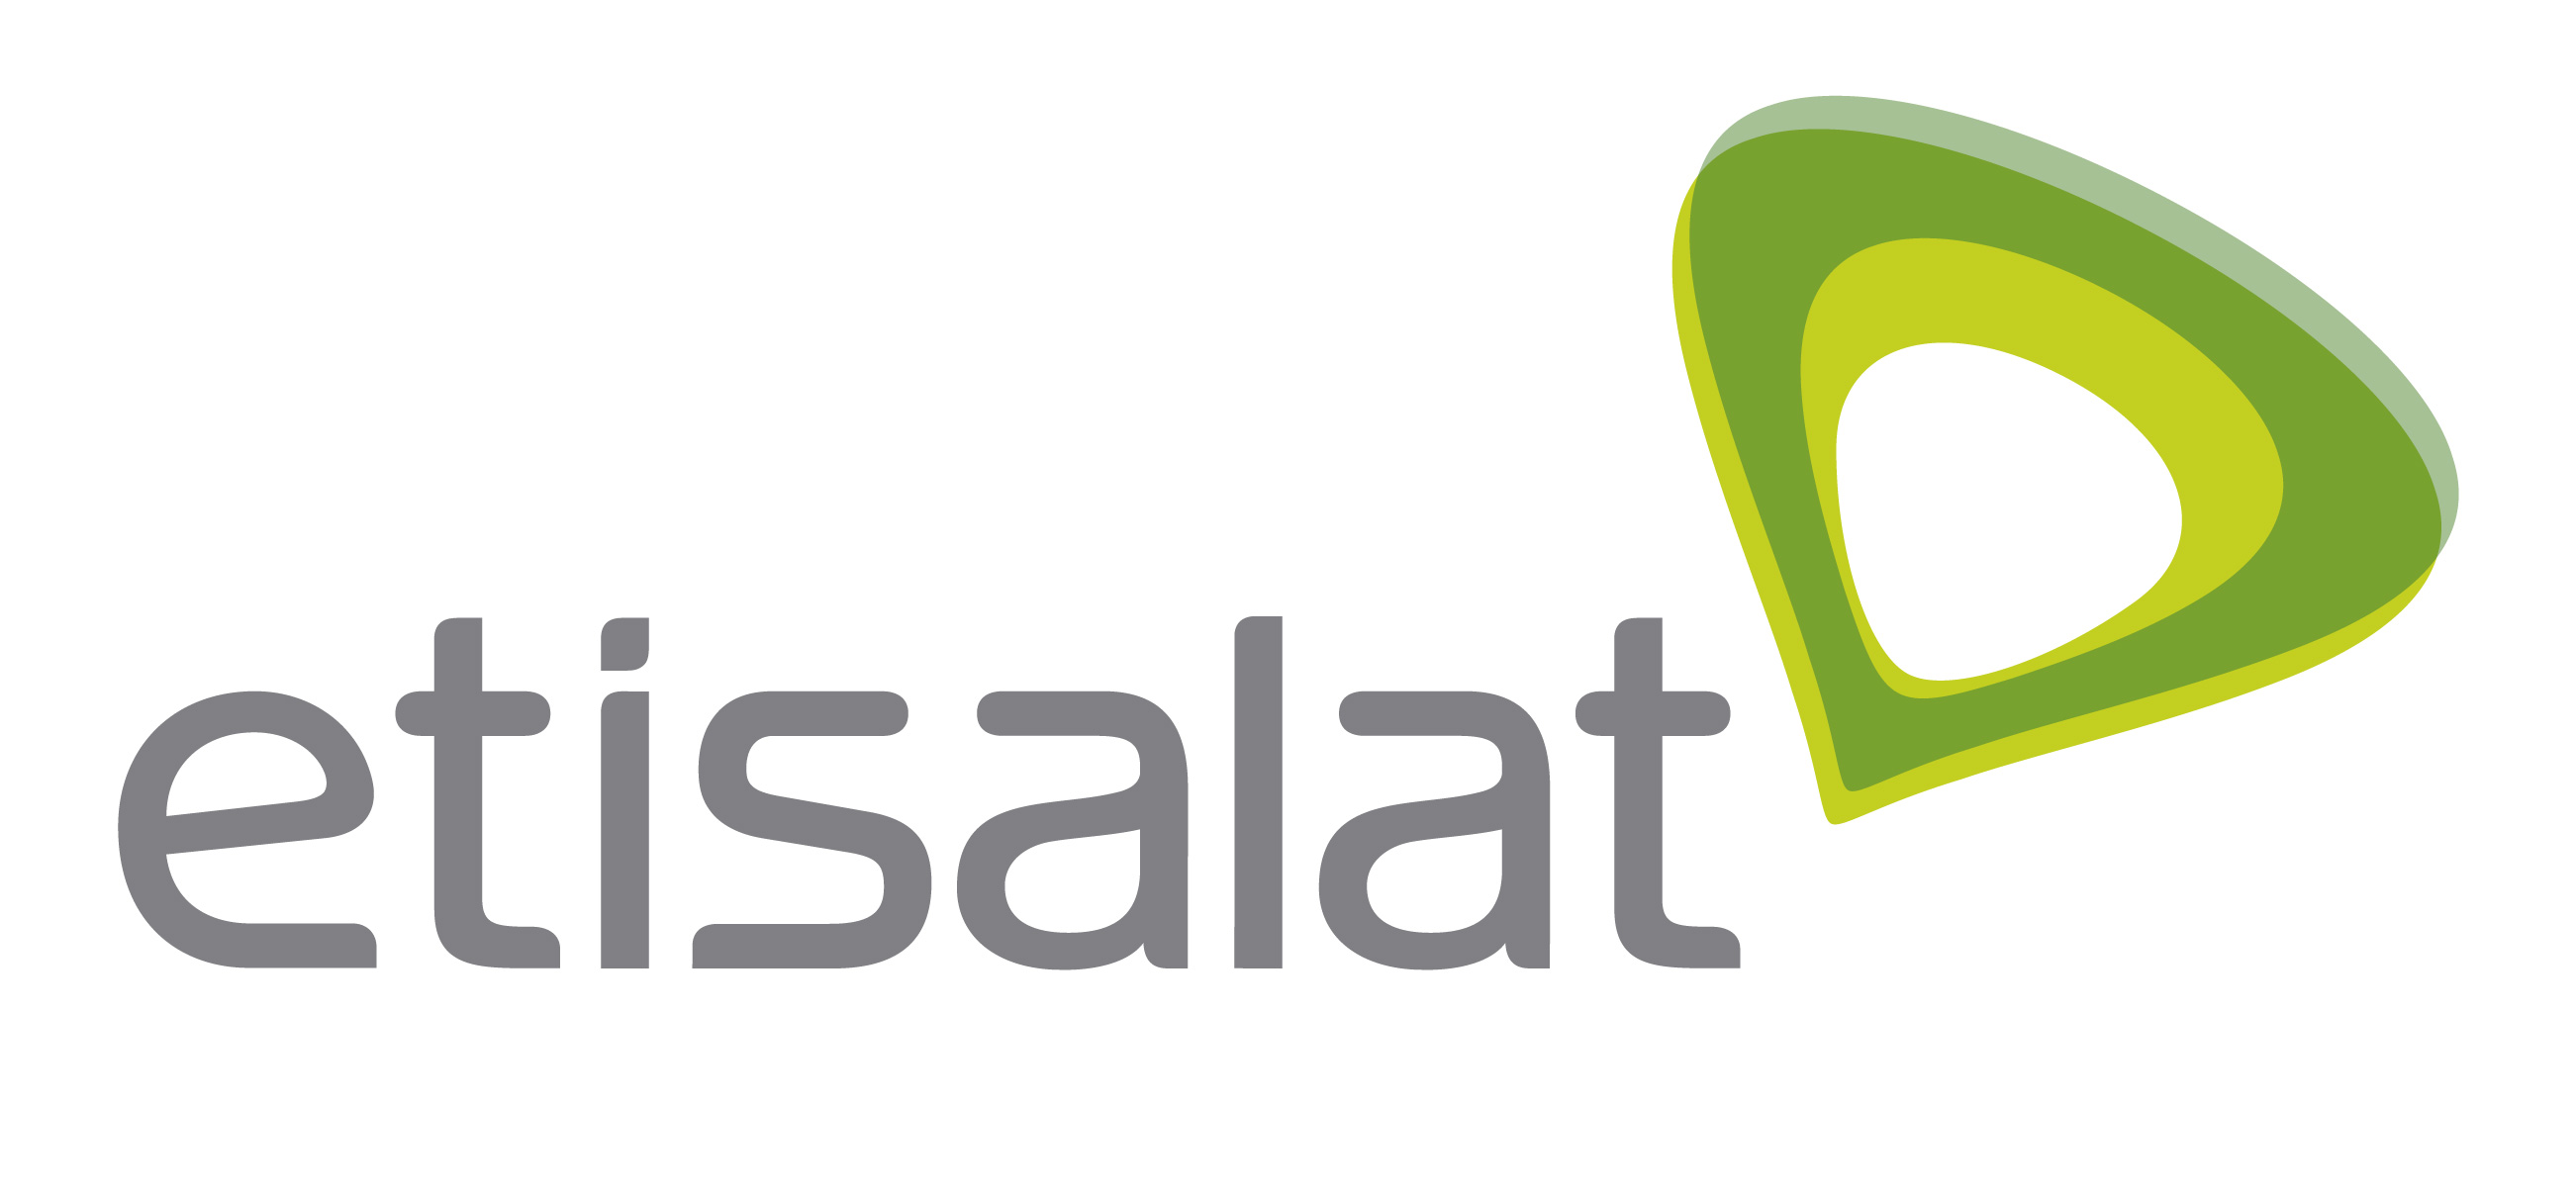 How To Transfer or Share Data on Etisalat Network